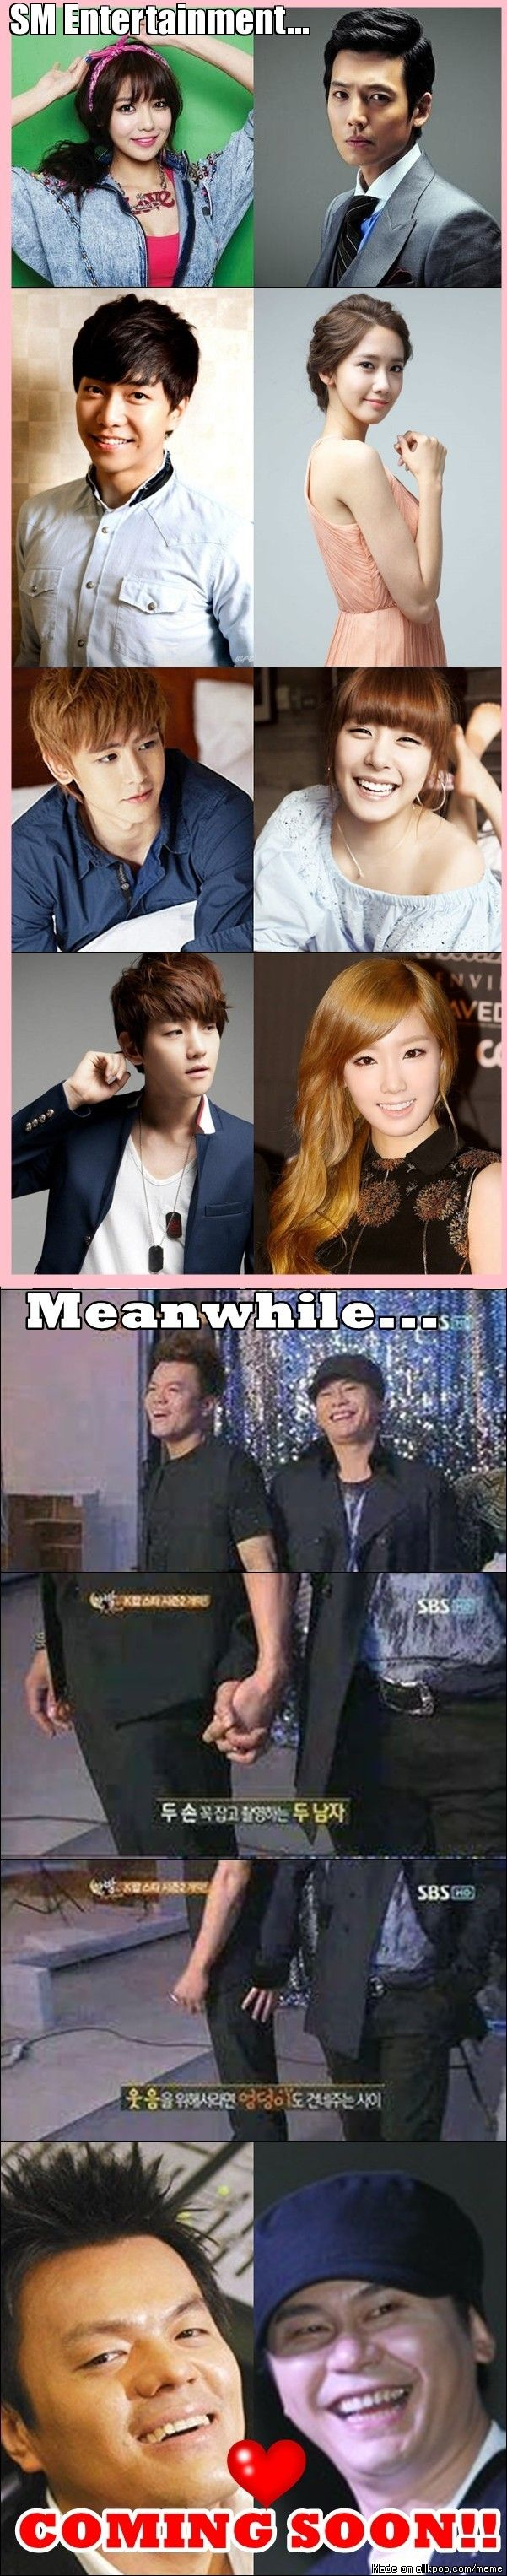 Kpop Dating Scandals Lol Xd Kpop Funny Memes Korean Music